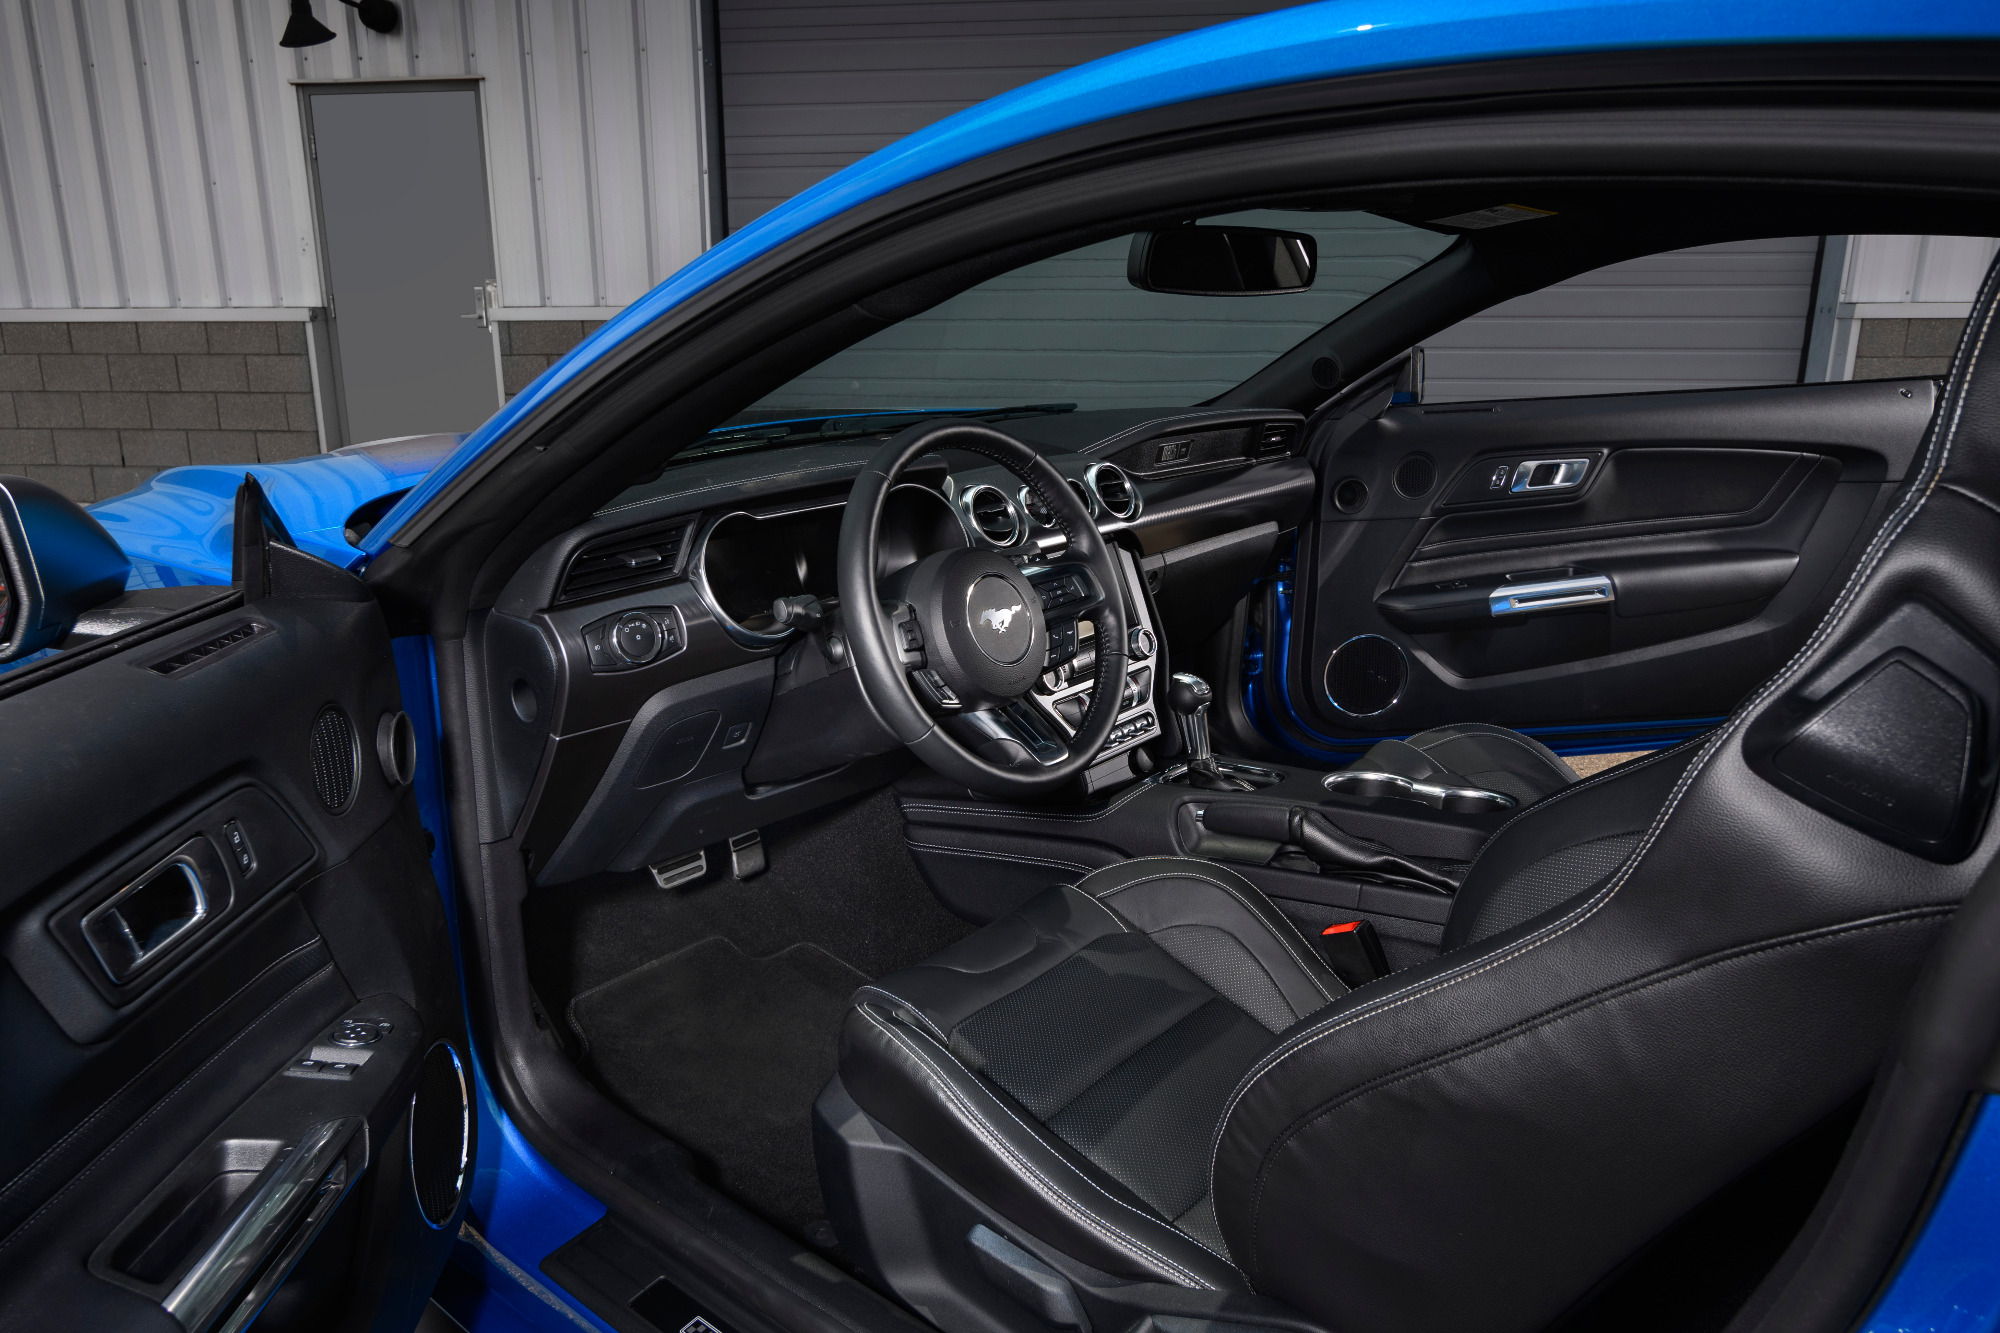 Ford Mustang Mach 1 2021 interior